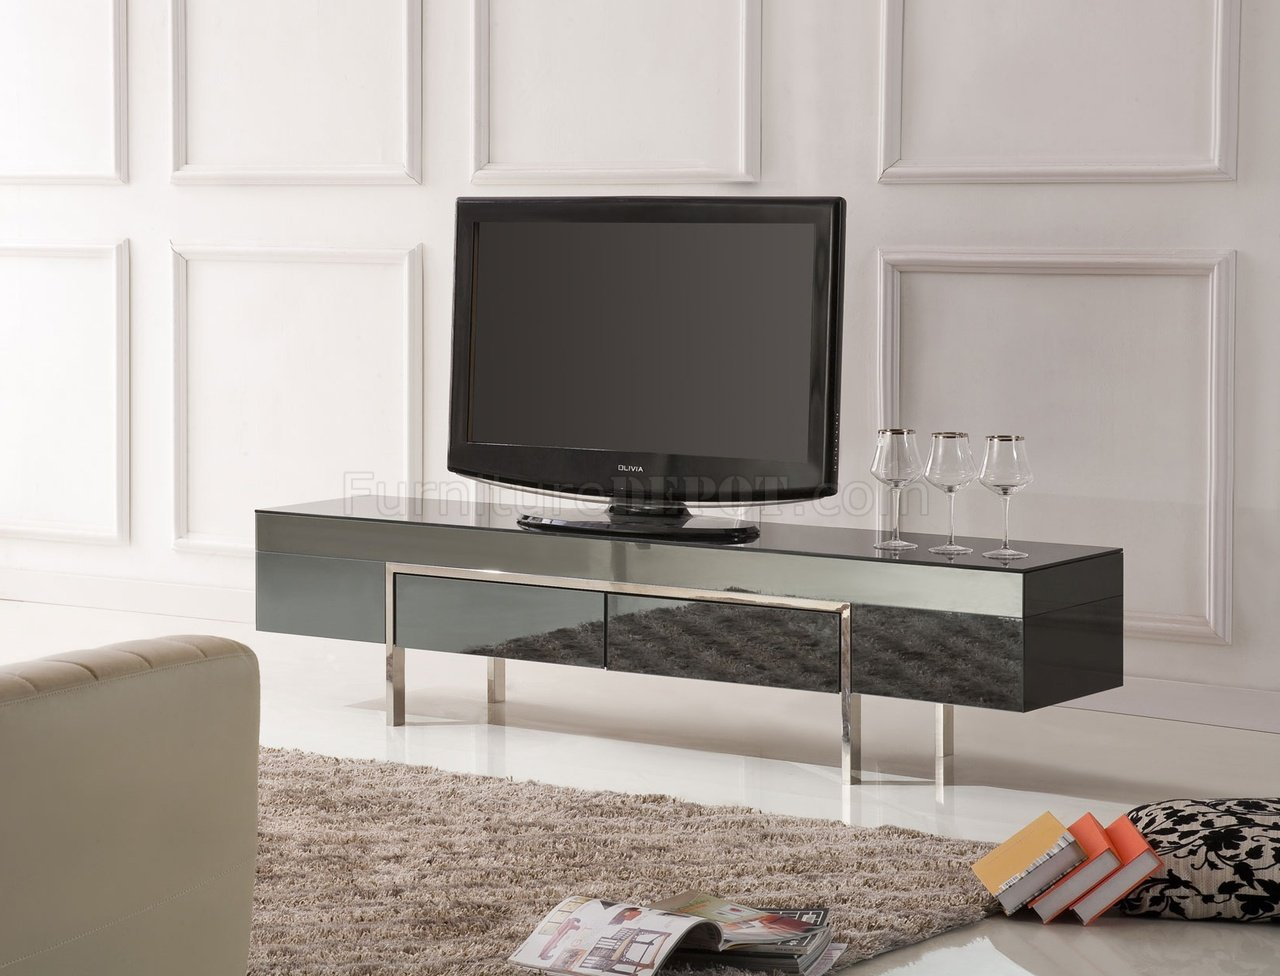 Black High Gloss Laquer Finish Modern Tv Stand W/metal Legs For Baby Proof Contemporary Tv Cabinets (View 10 of 15)